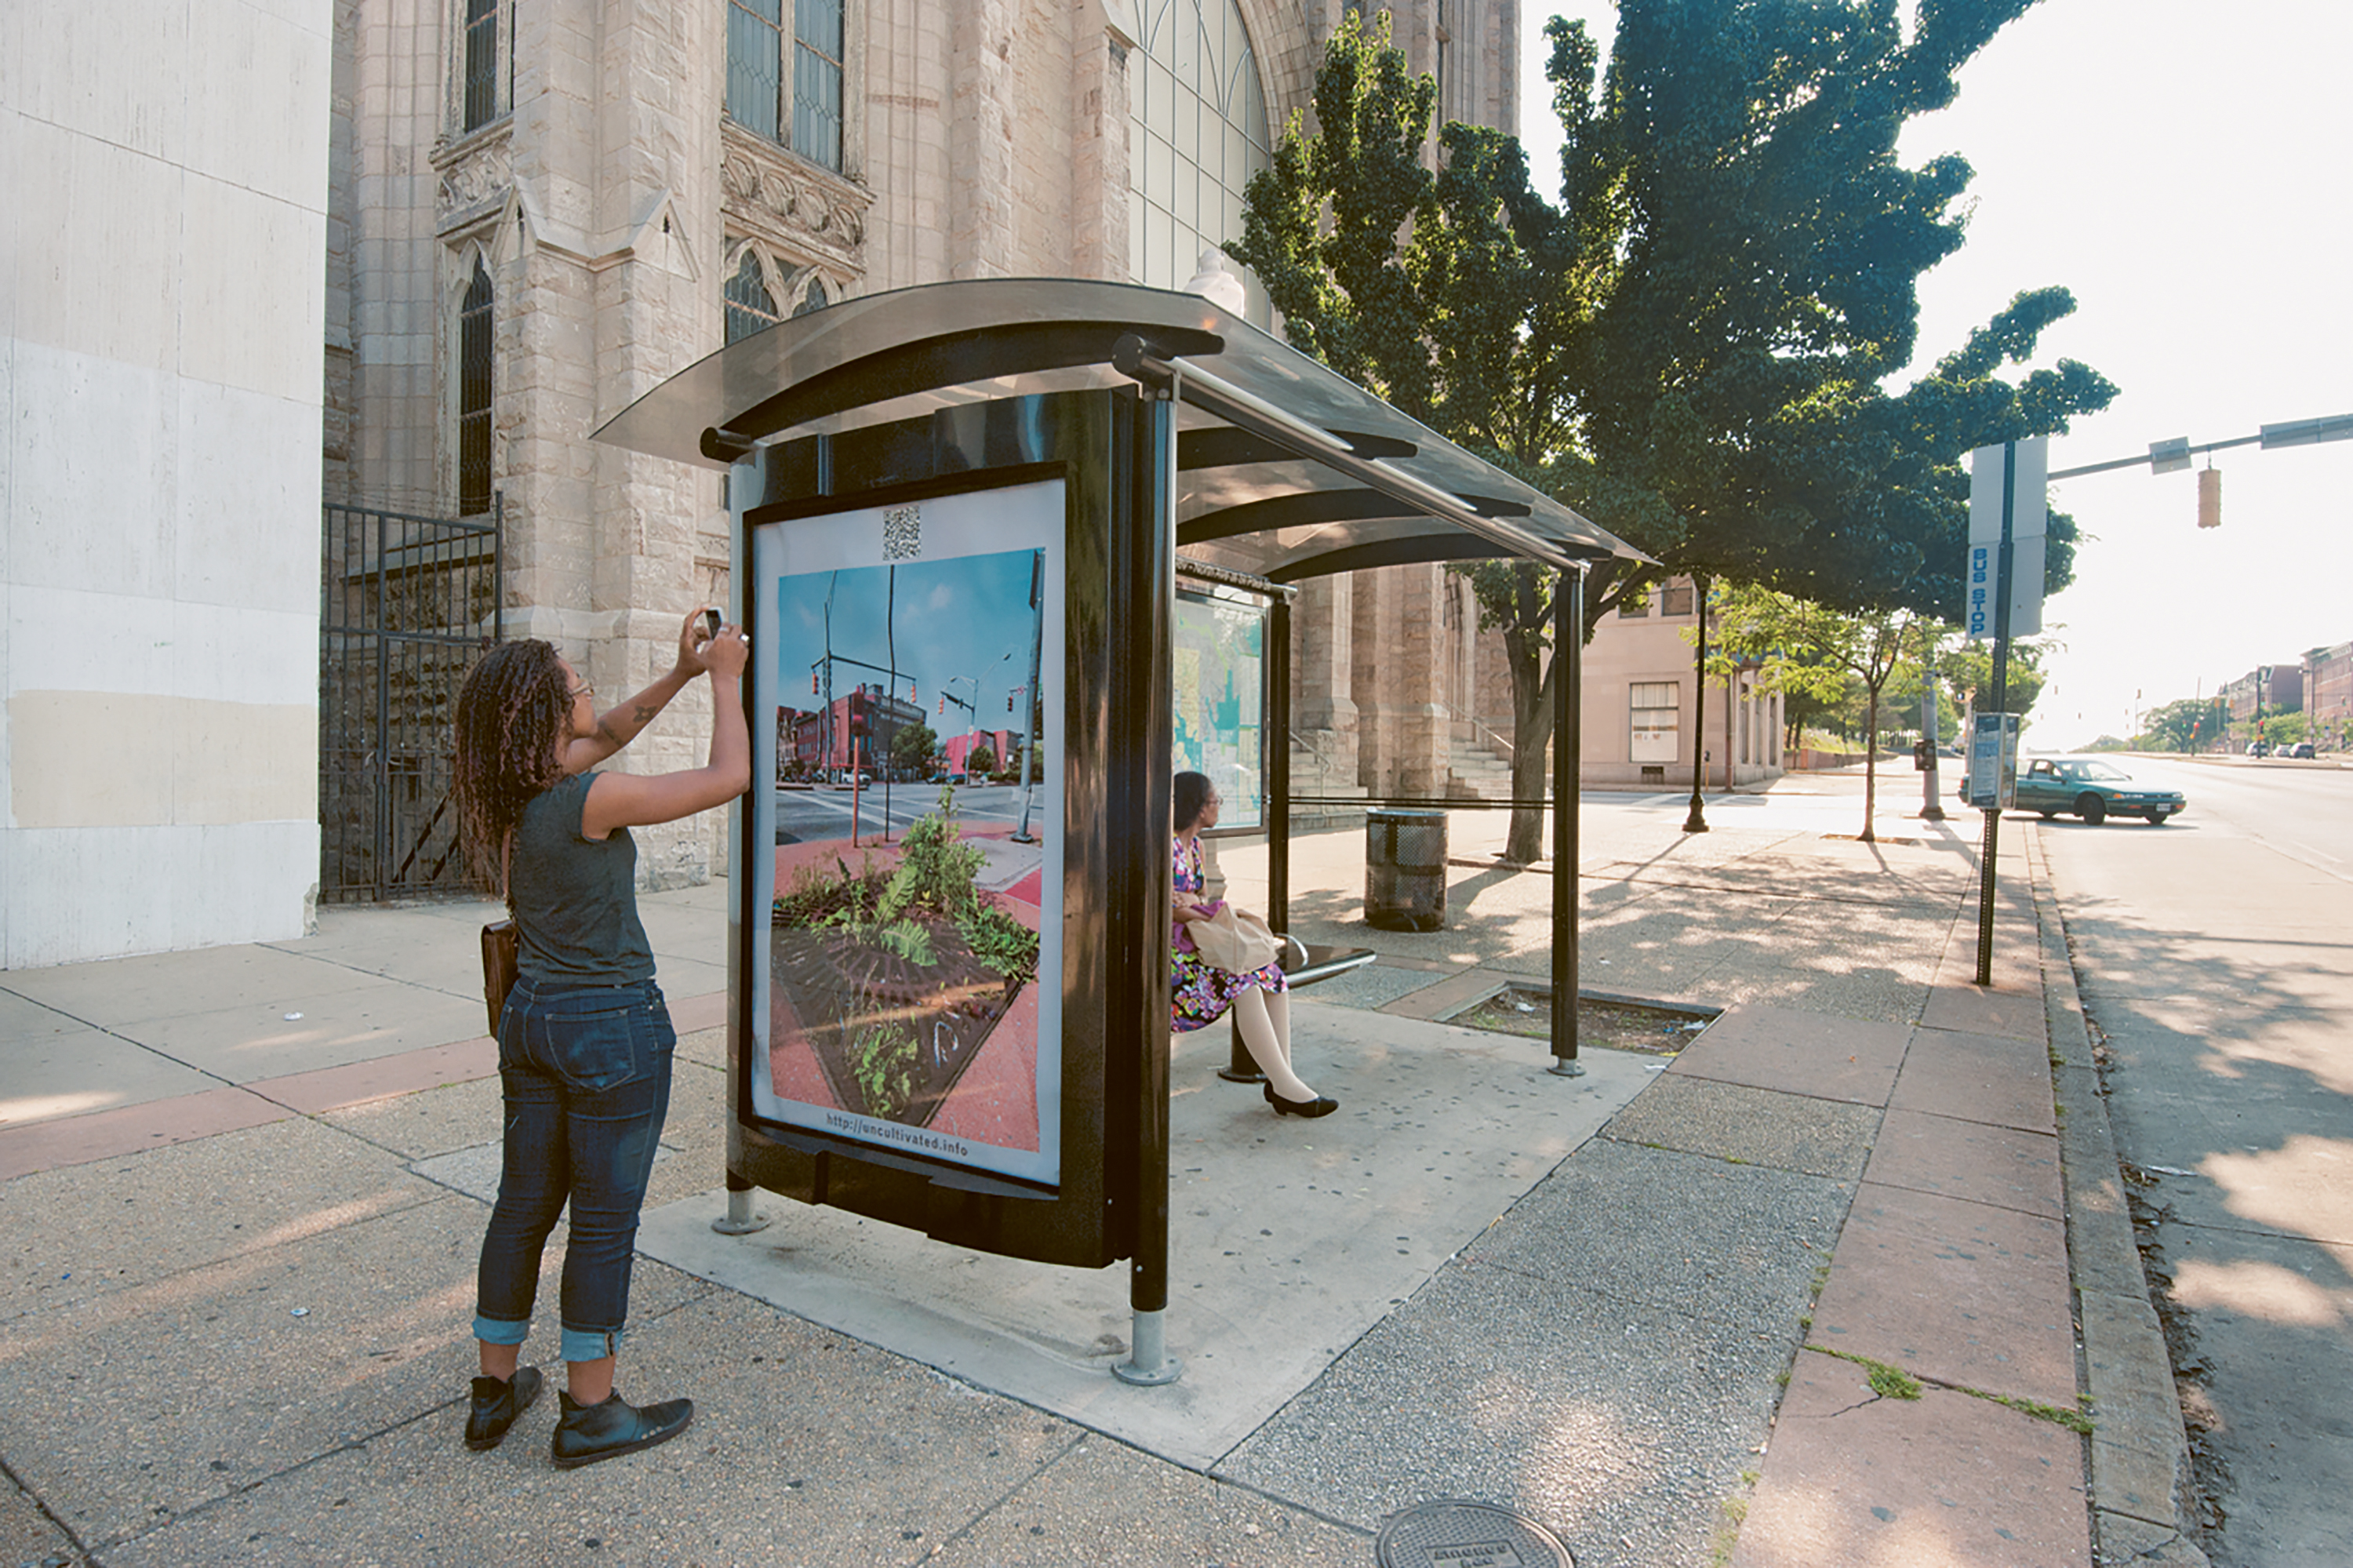 Demonstration of site specific poster for transit shelter, North Avenue, Baltimore, 2011. Art by Lynn Cazabon from the series Uncultivated.